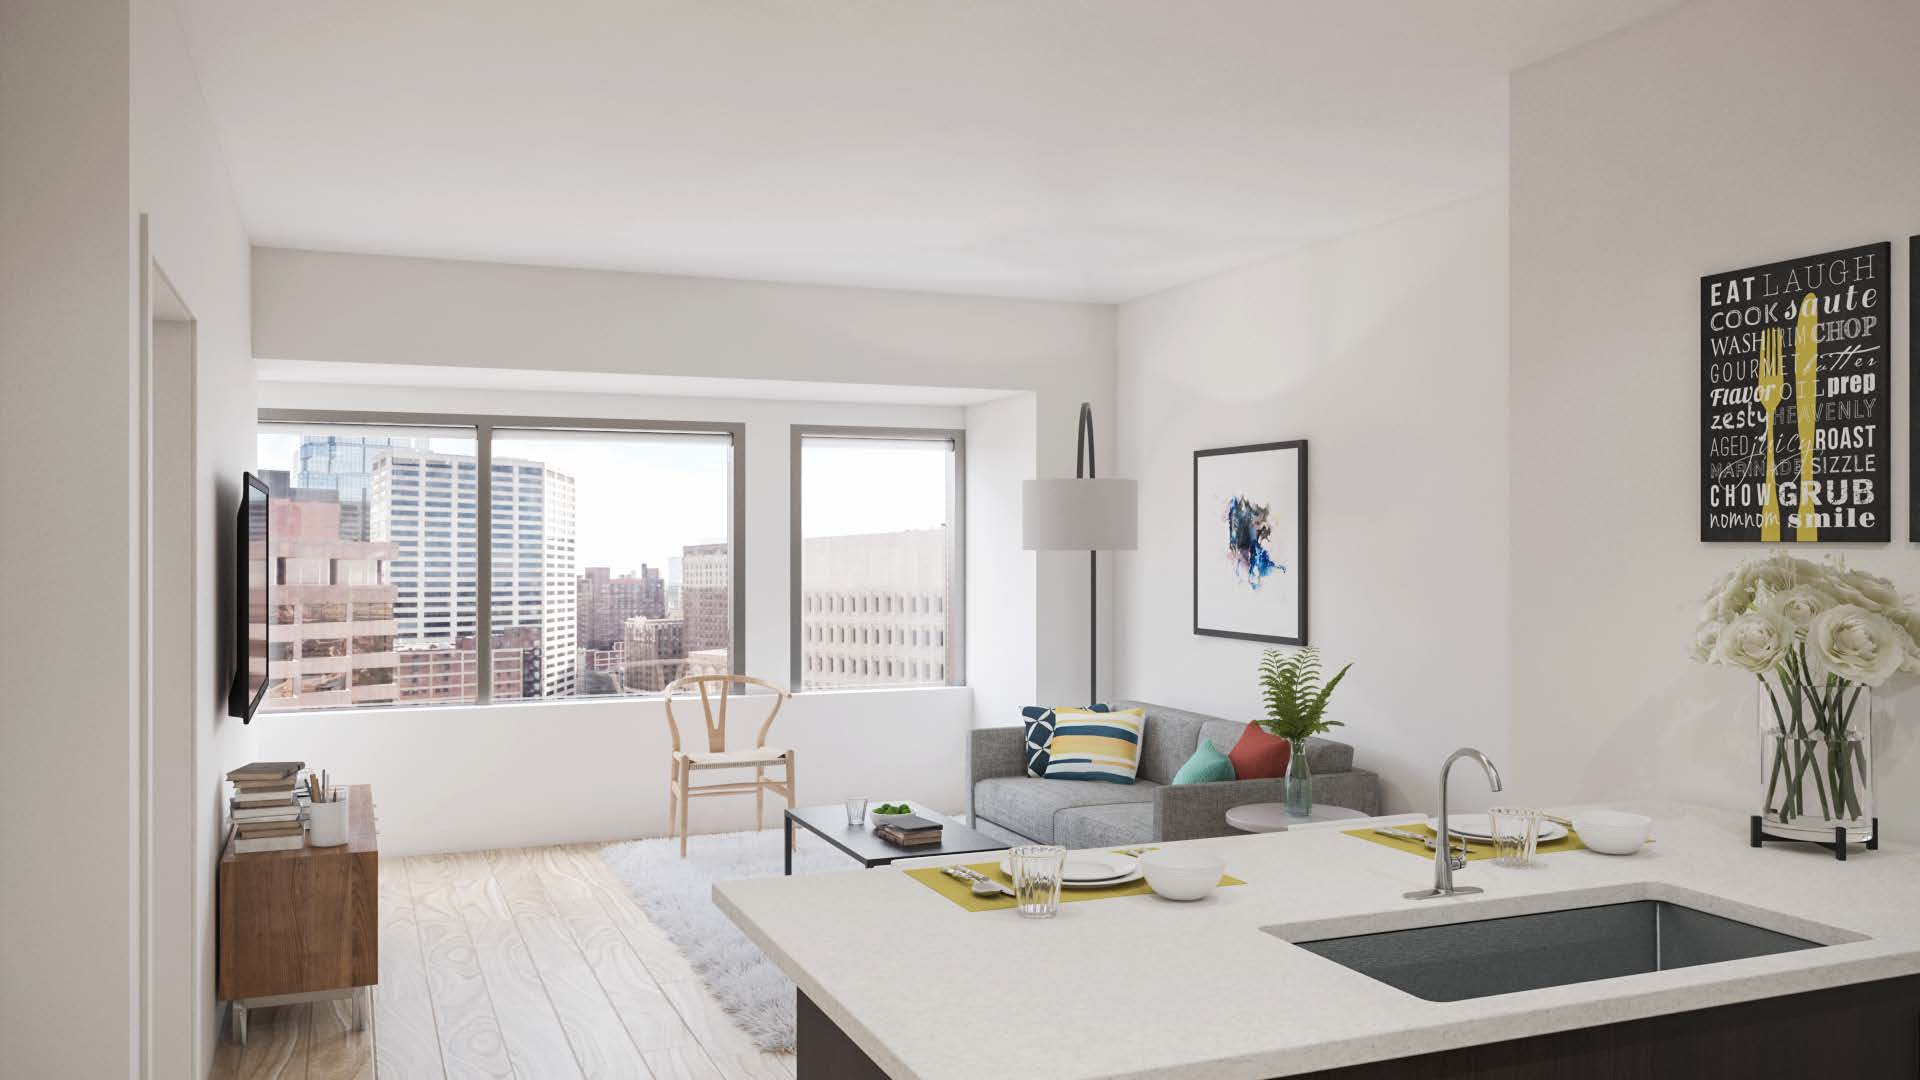 See more views of available units in the photo gallery below.